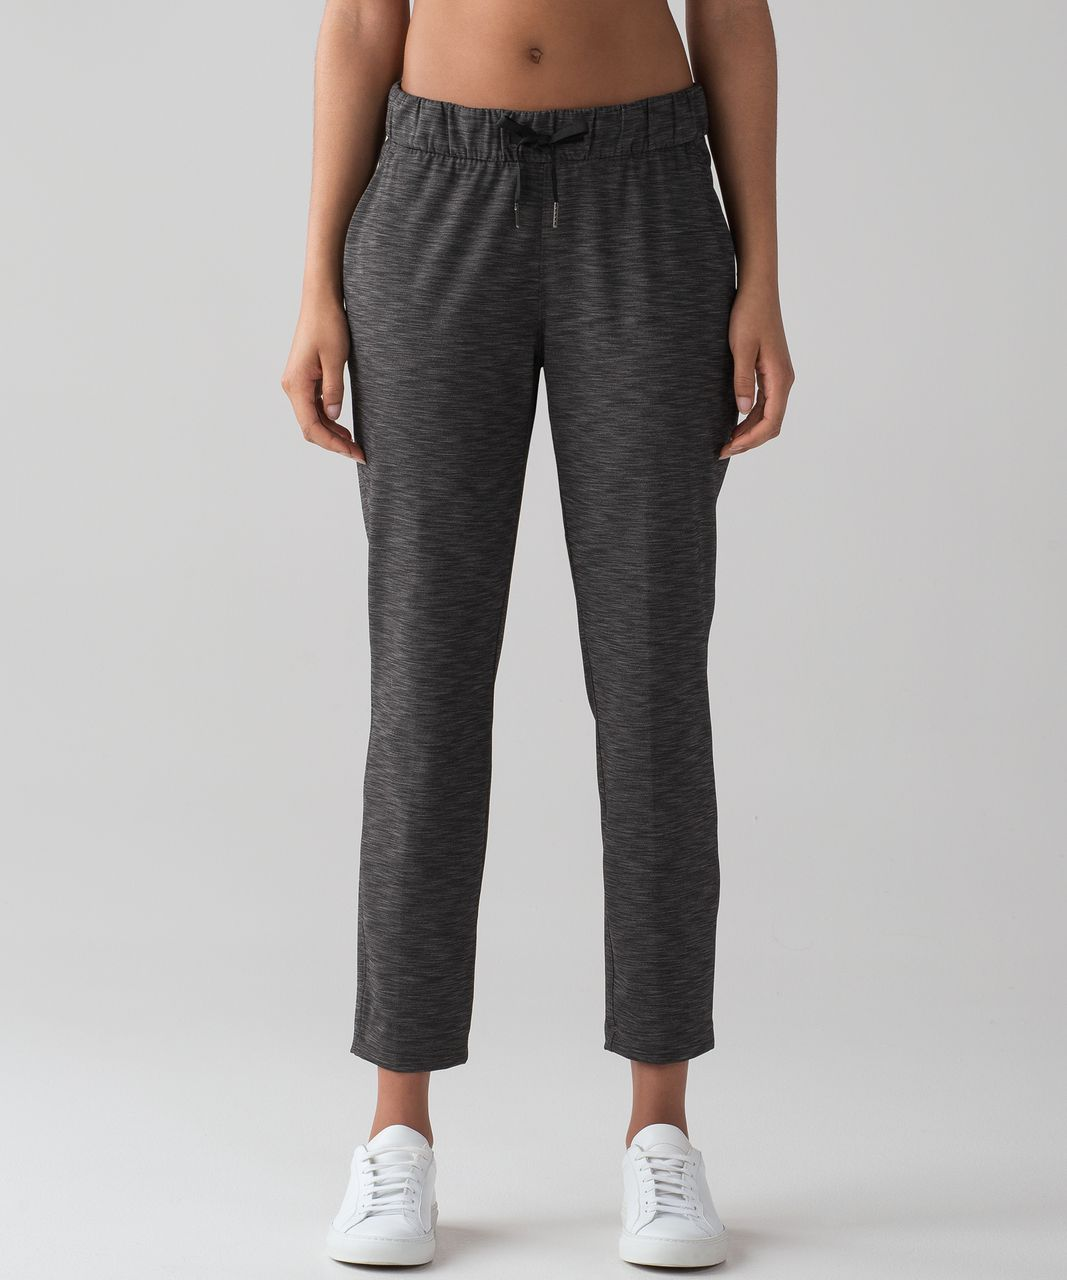 """Lululemon On The Fly Pant (28"""") - Heathered Black (First"""